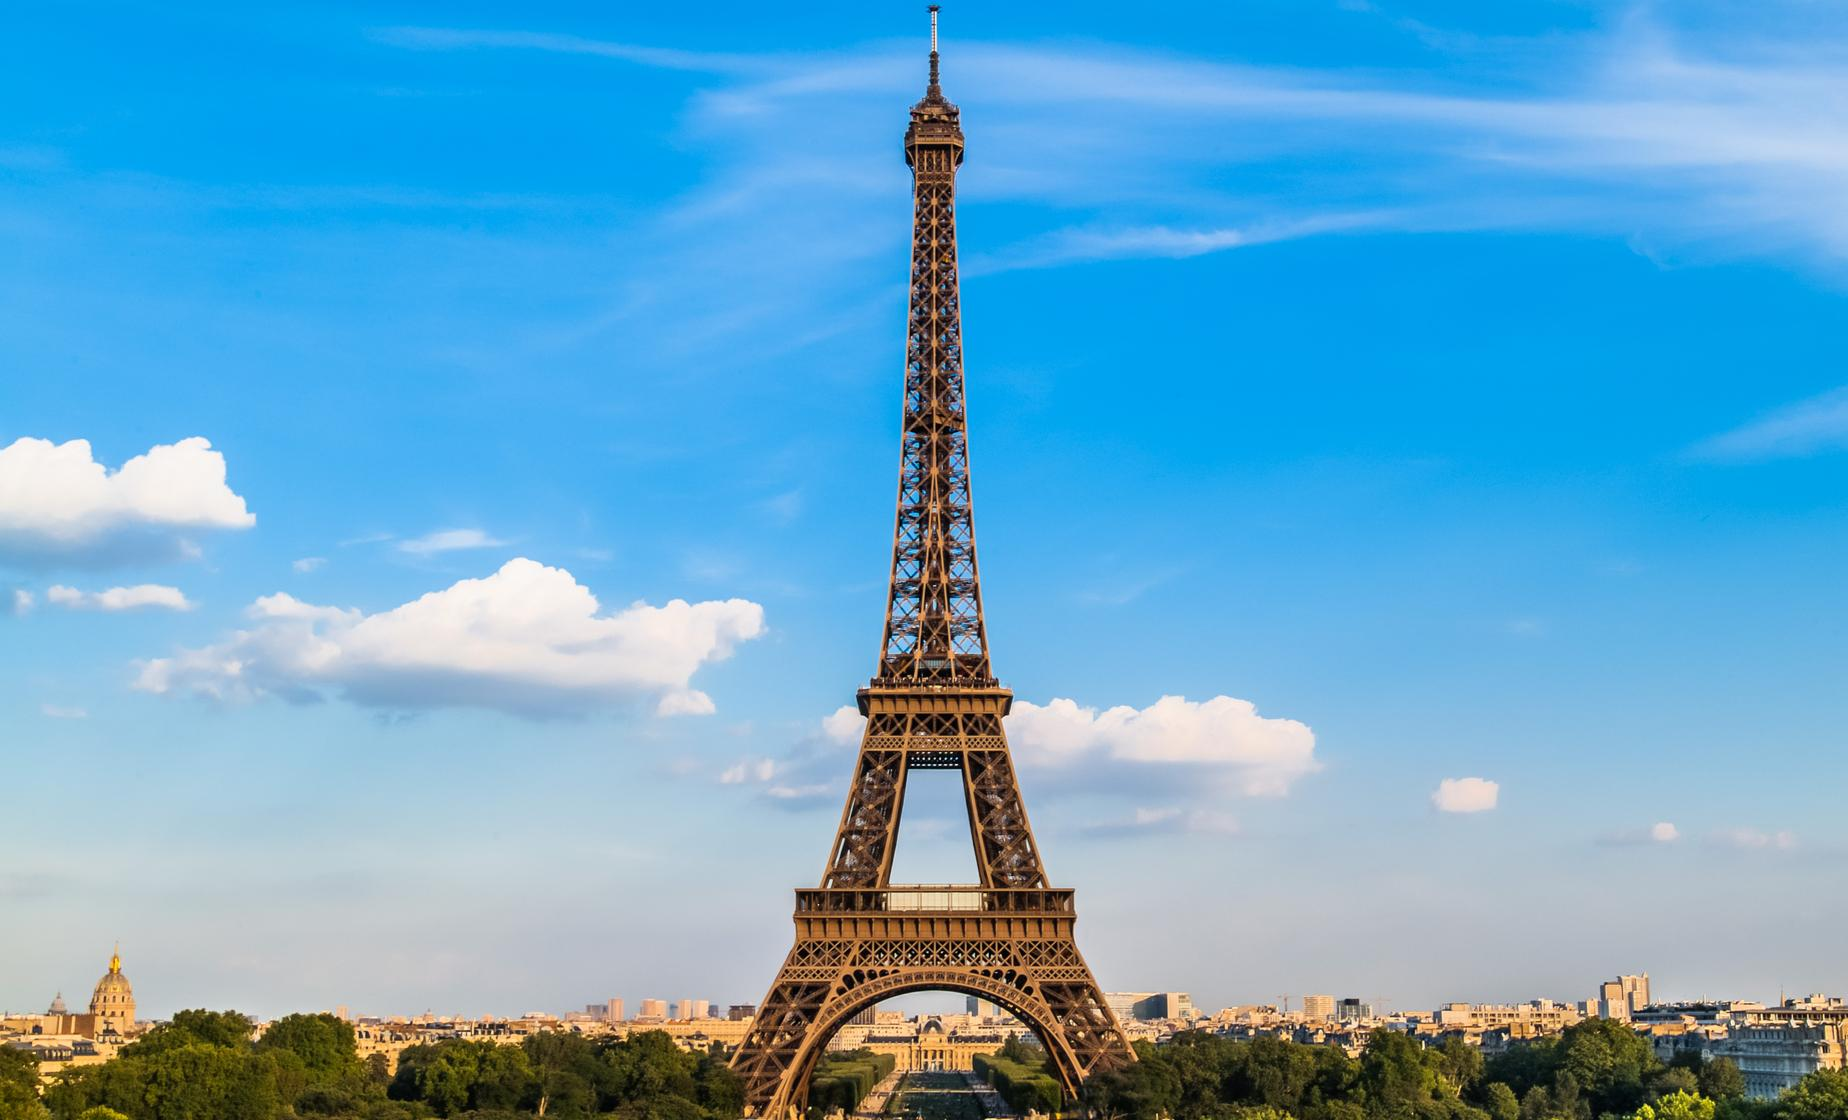 Luxury Day Trip to Paris Tour (Notre Dame, Champs Elysees, Eiffel Tower)